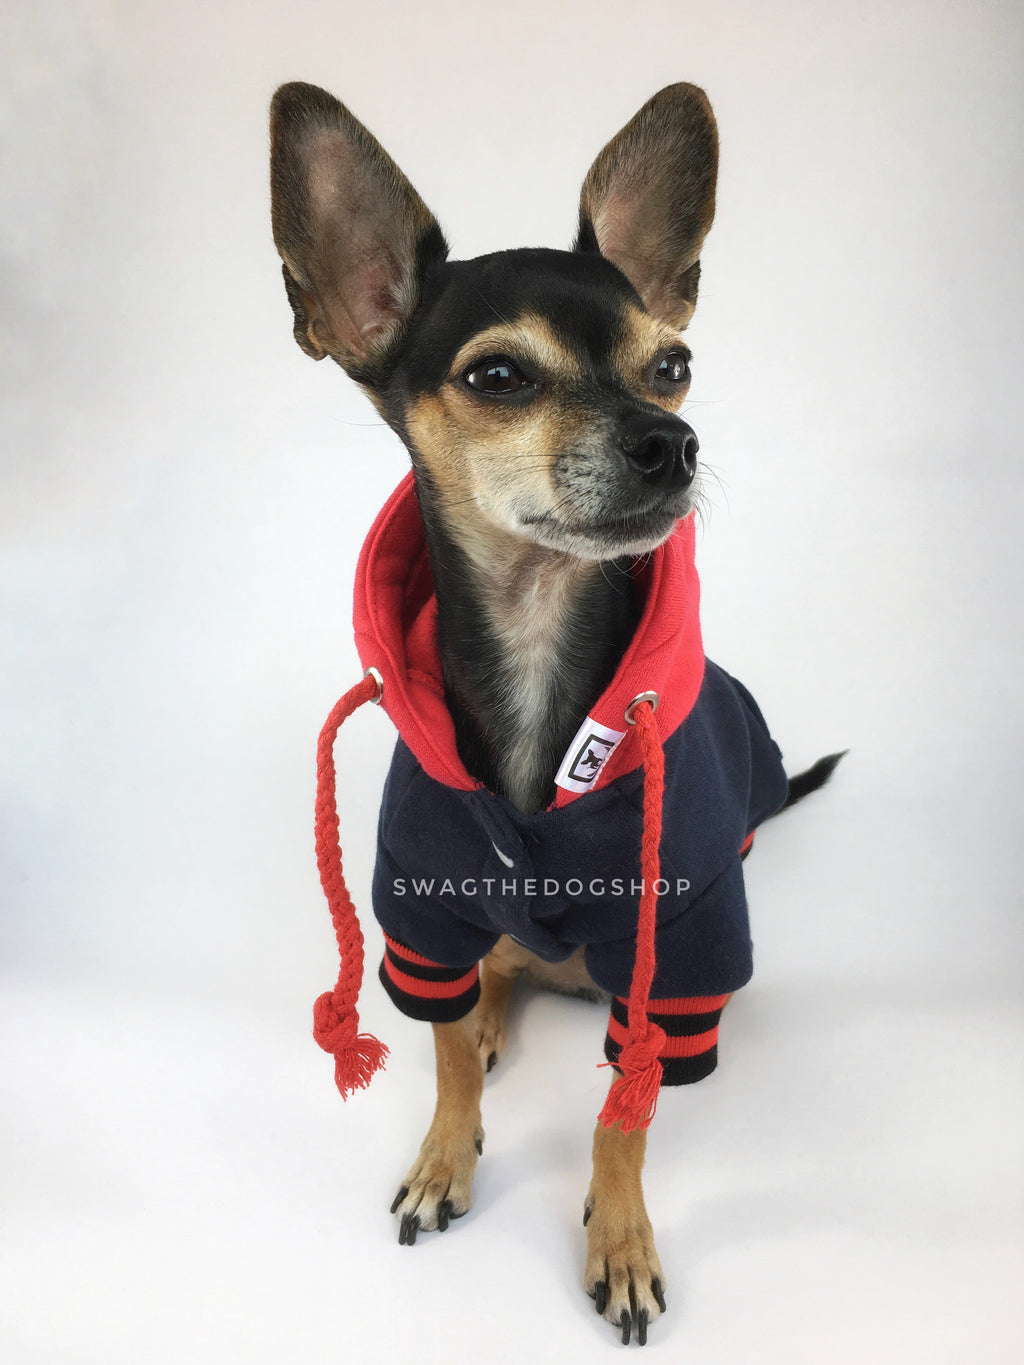 Parklife Navy and Red Sports Hoodie - Full Front View of Cute Chihuahua Dog Wearing Hoodie. Navy and Red Sports Hoodie